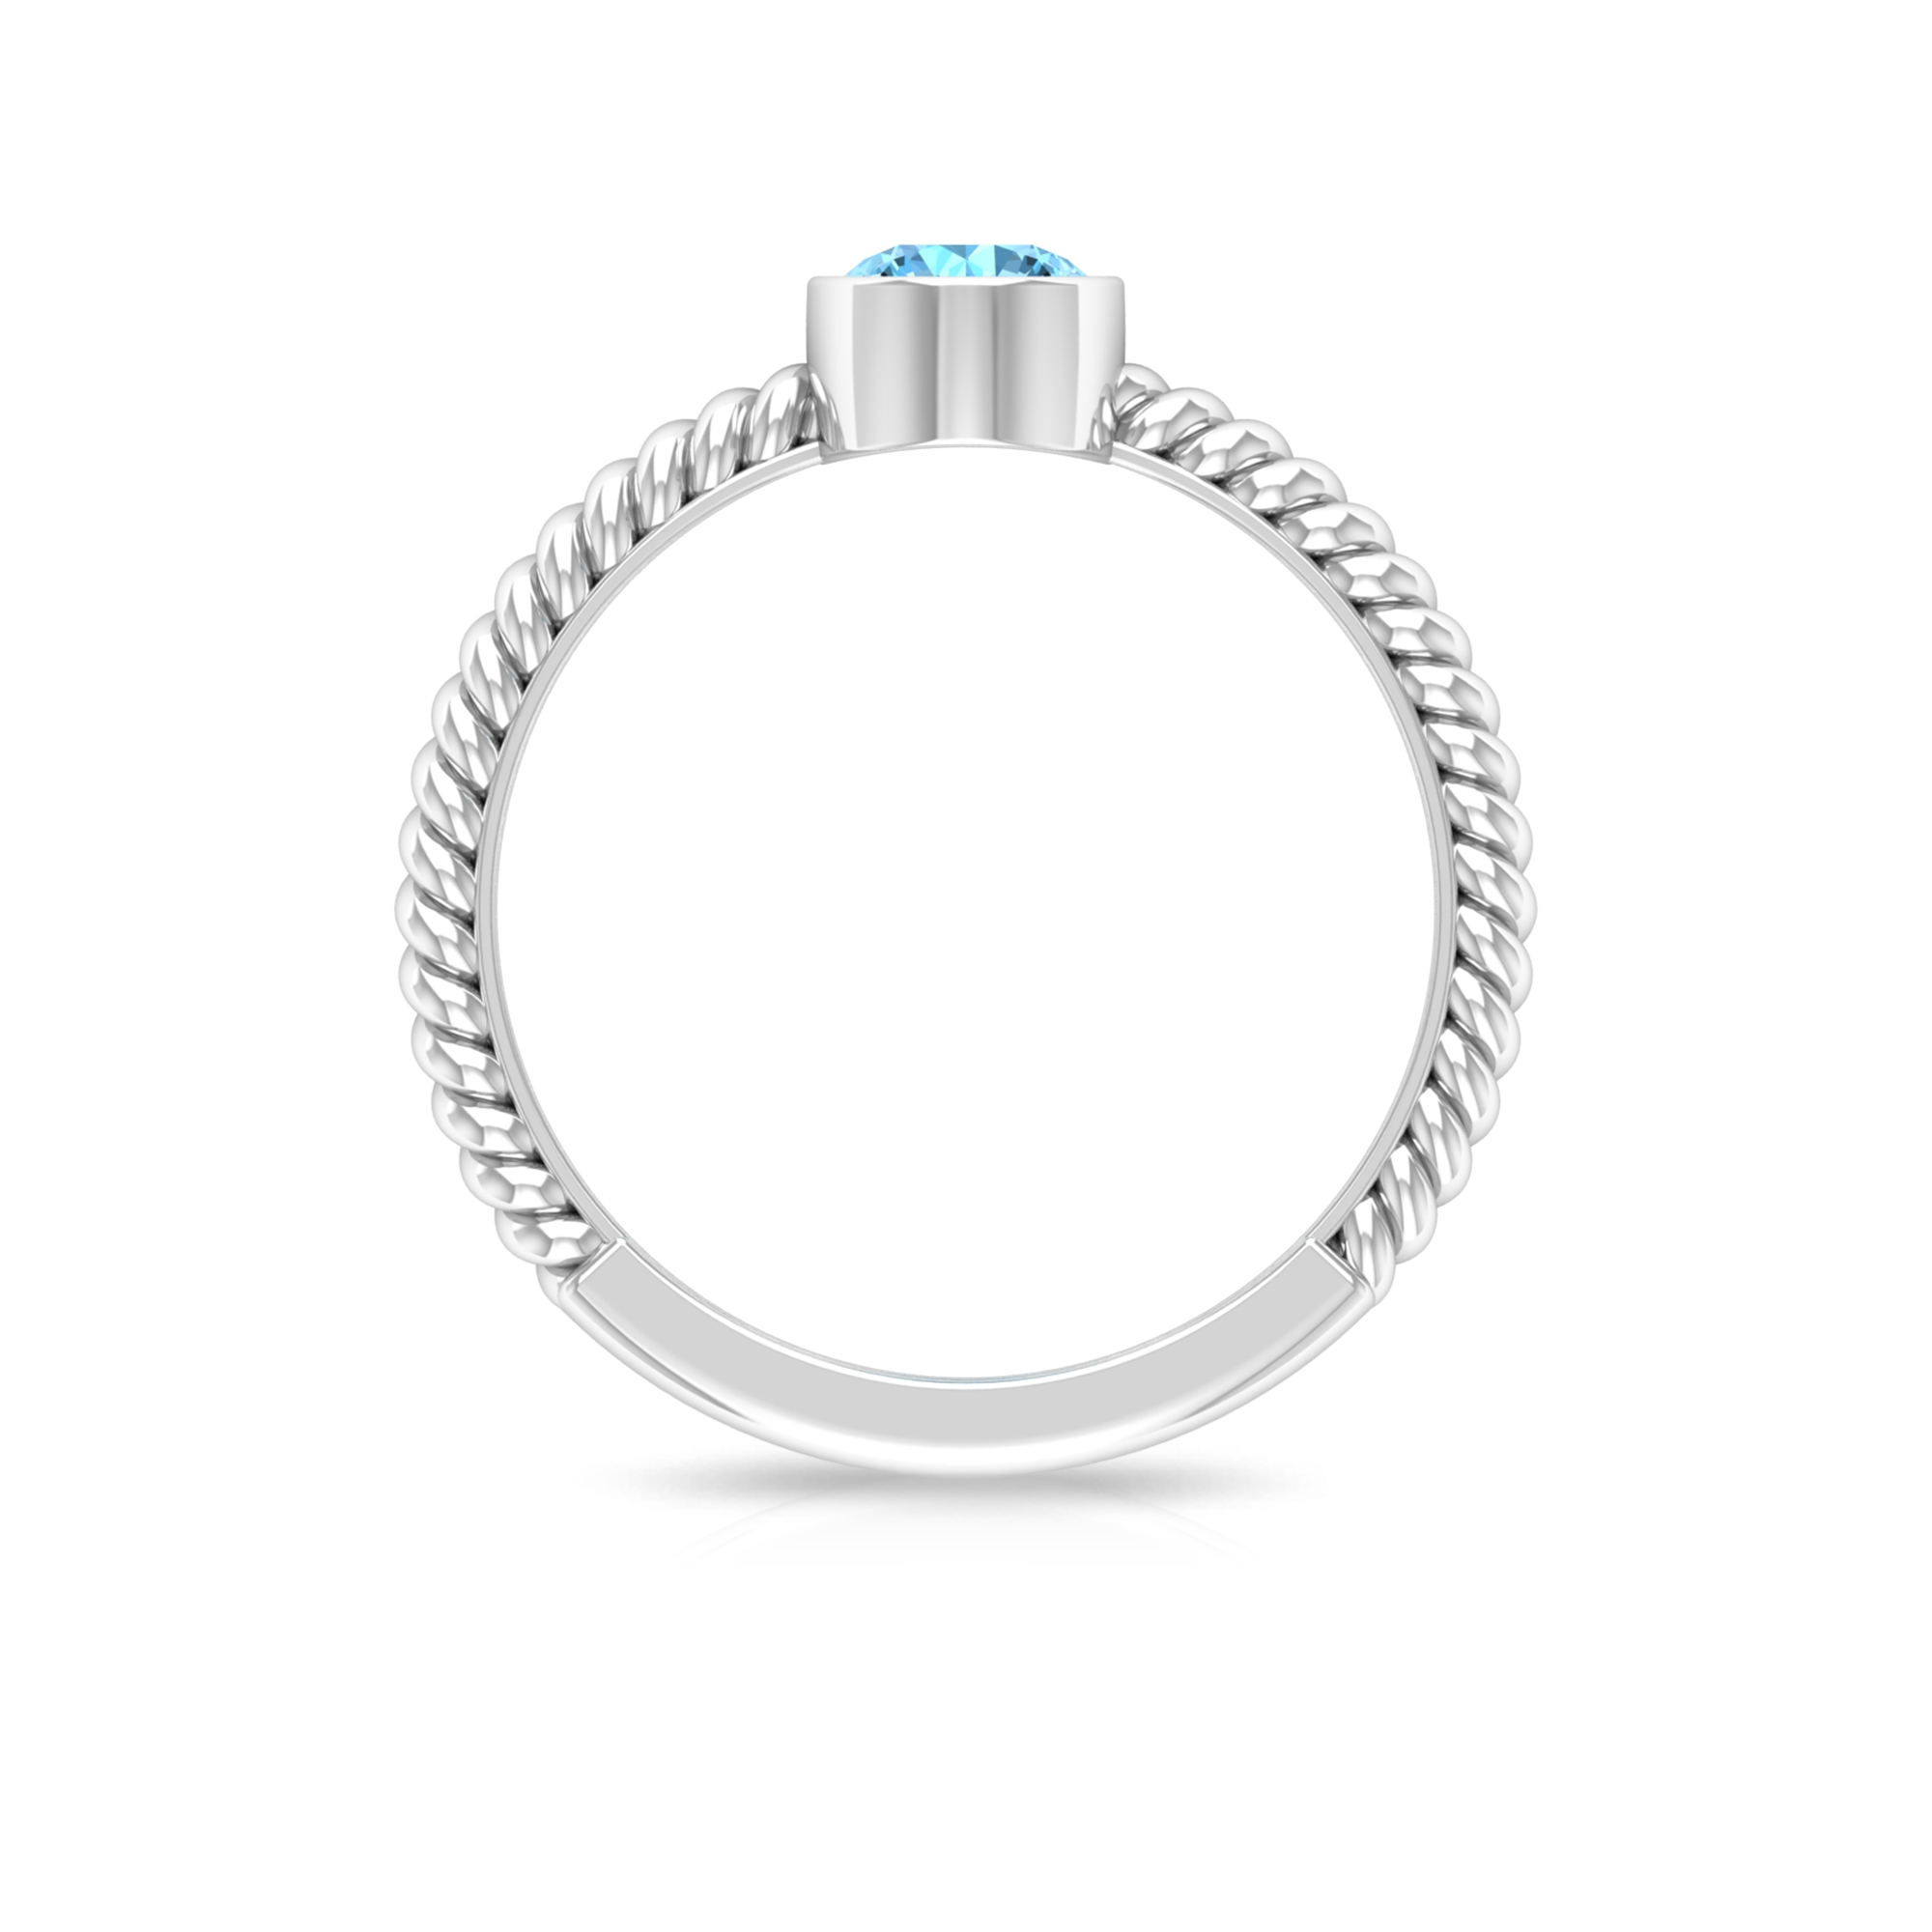 5 MM Round Cut Aquamarine Solitaire Bezel Set Ring with Twisted Rope Shank